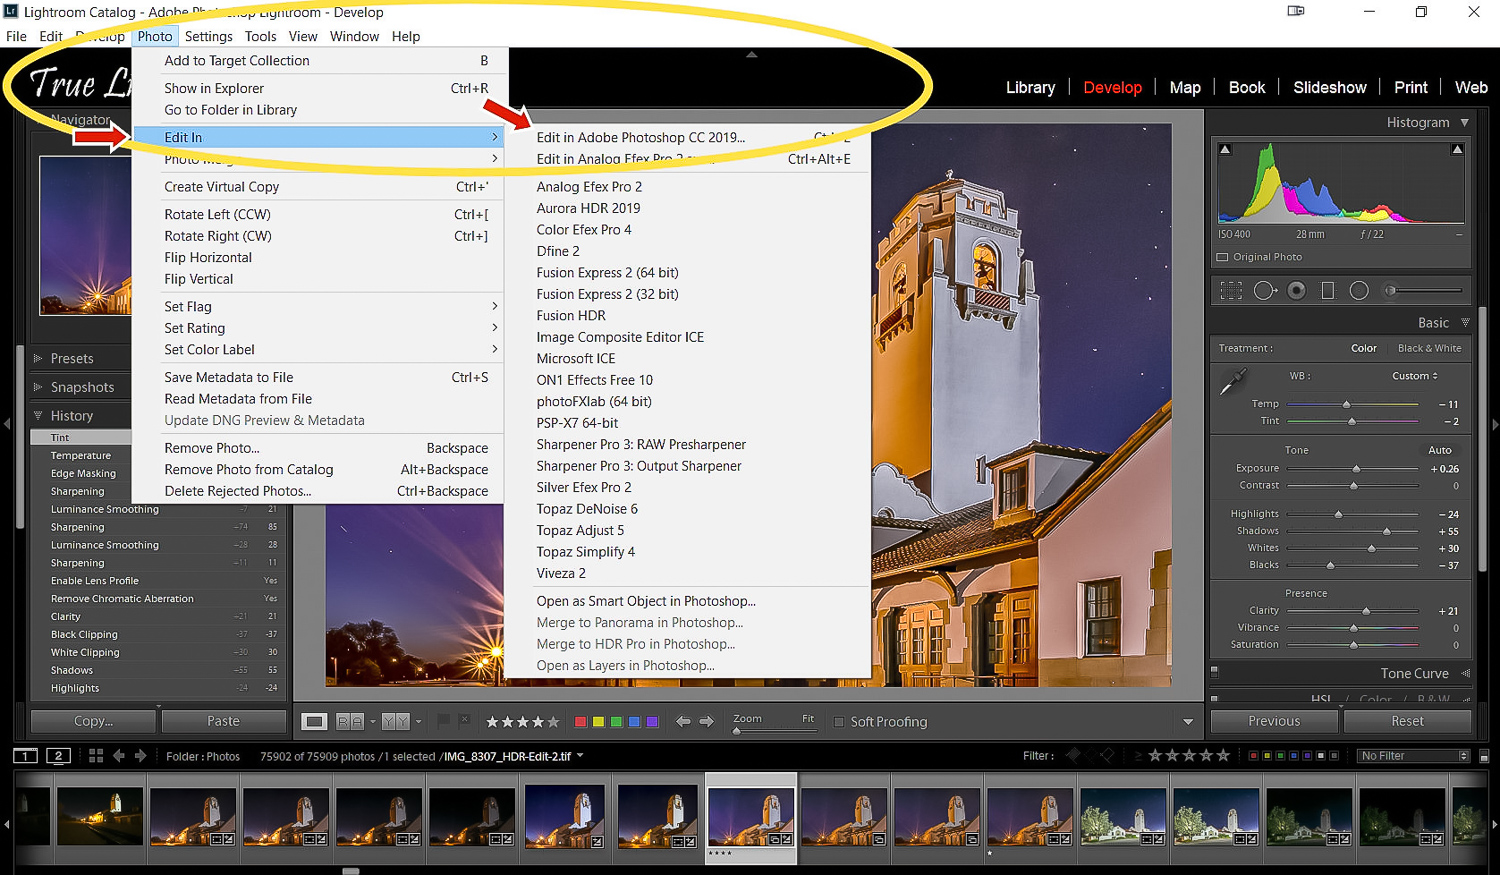 Image: How to send an image from Lightroom to Photoshop for editing. You can also send multiple imag...